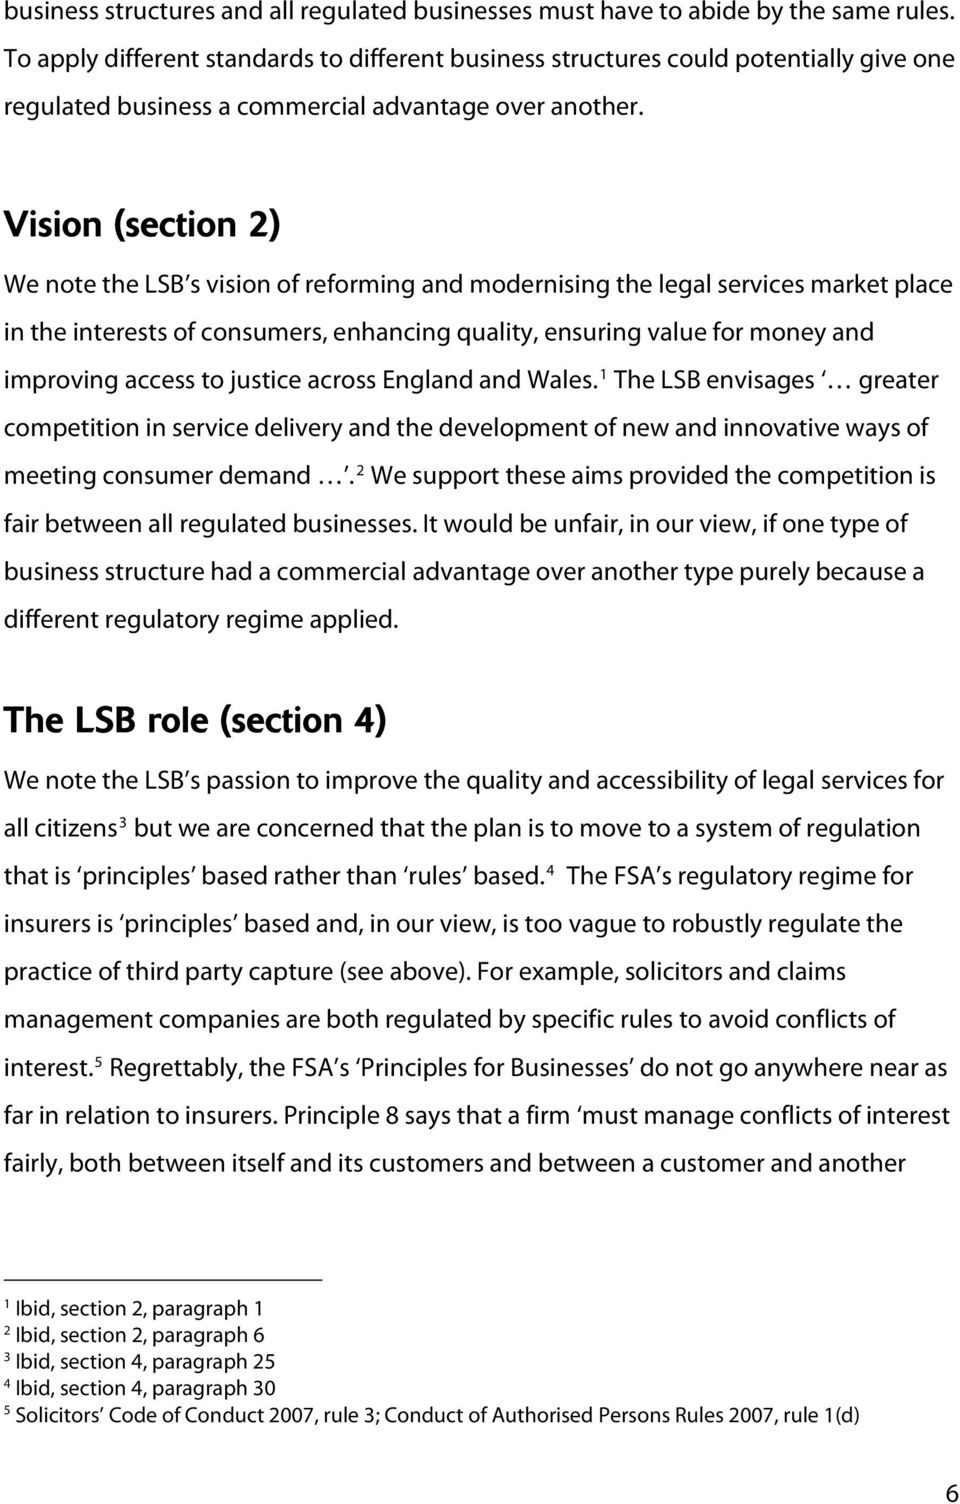 Vision (section ) We note the LSB s vision of reforming and modernising the legal services market place in the interests of consumers, enhancing quality, ensuring value for money and improving access